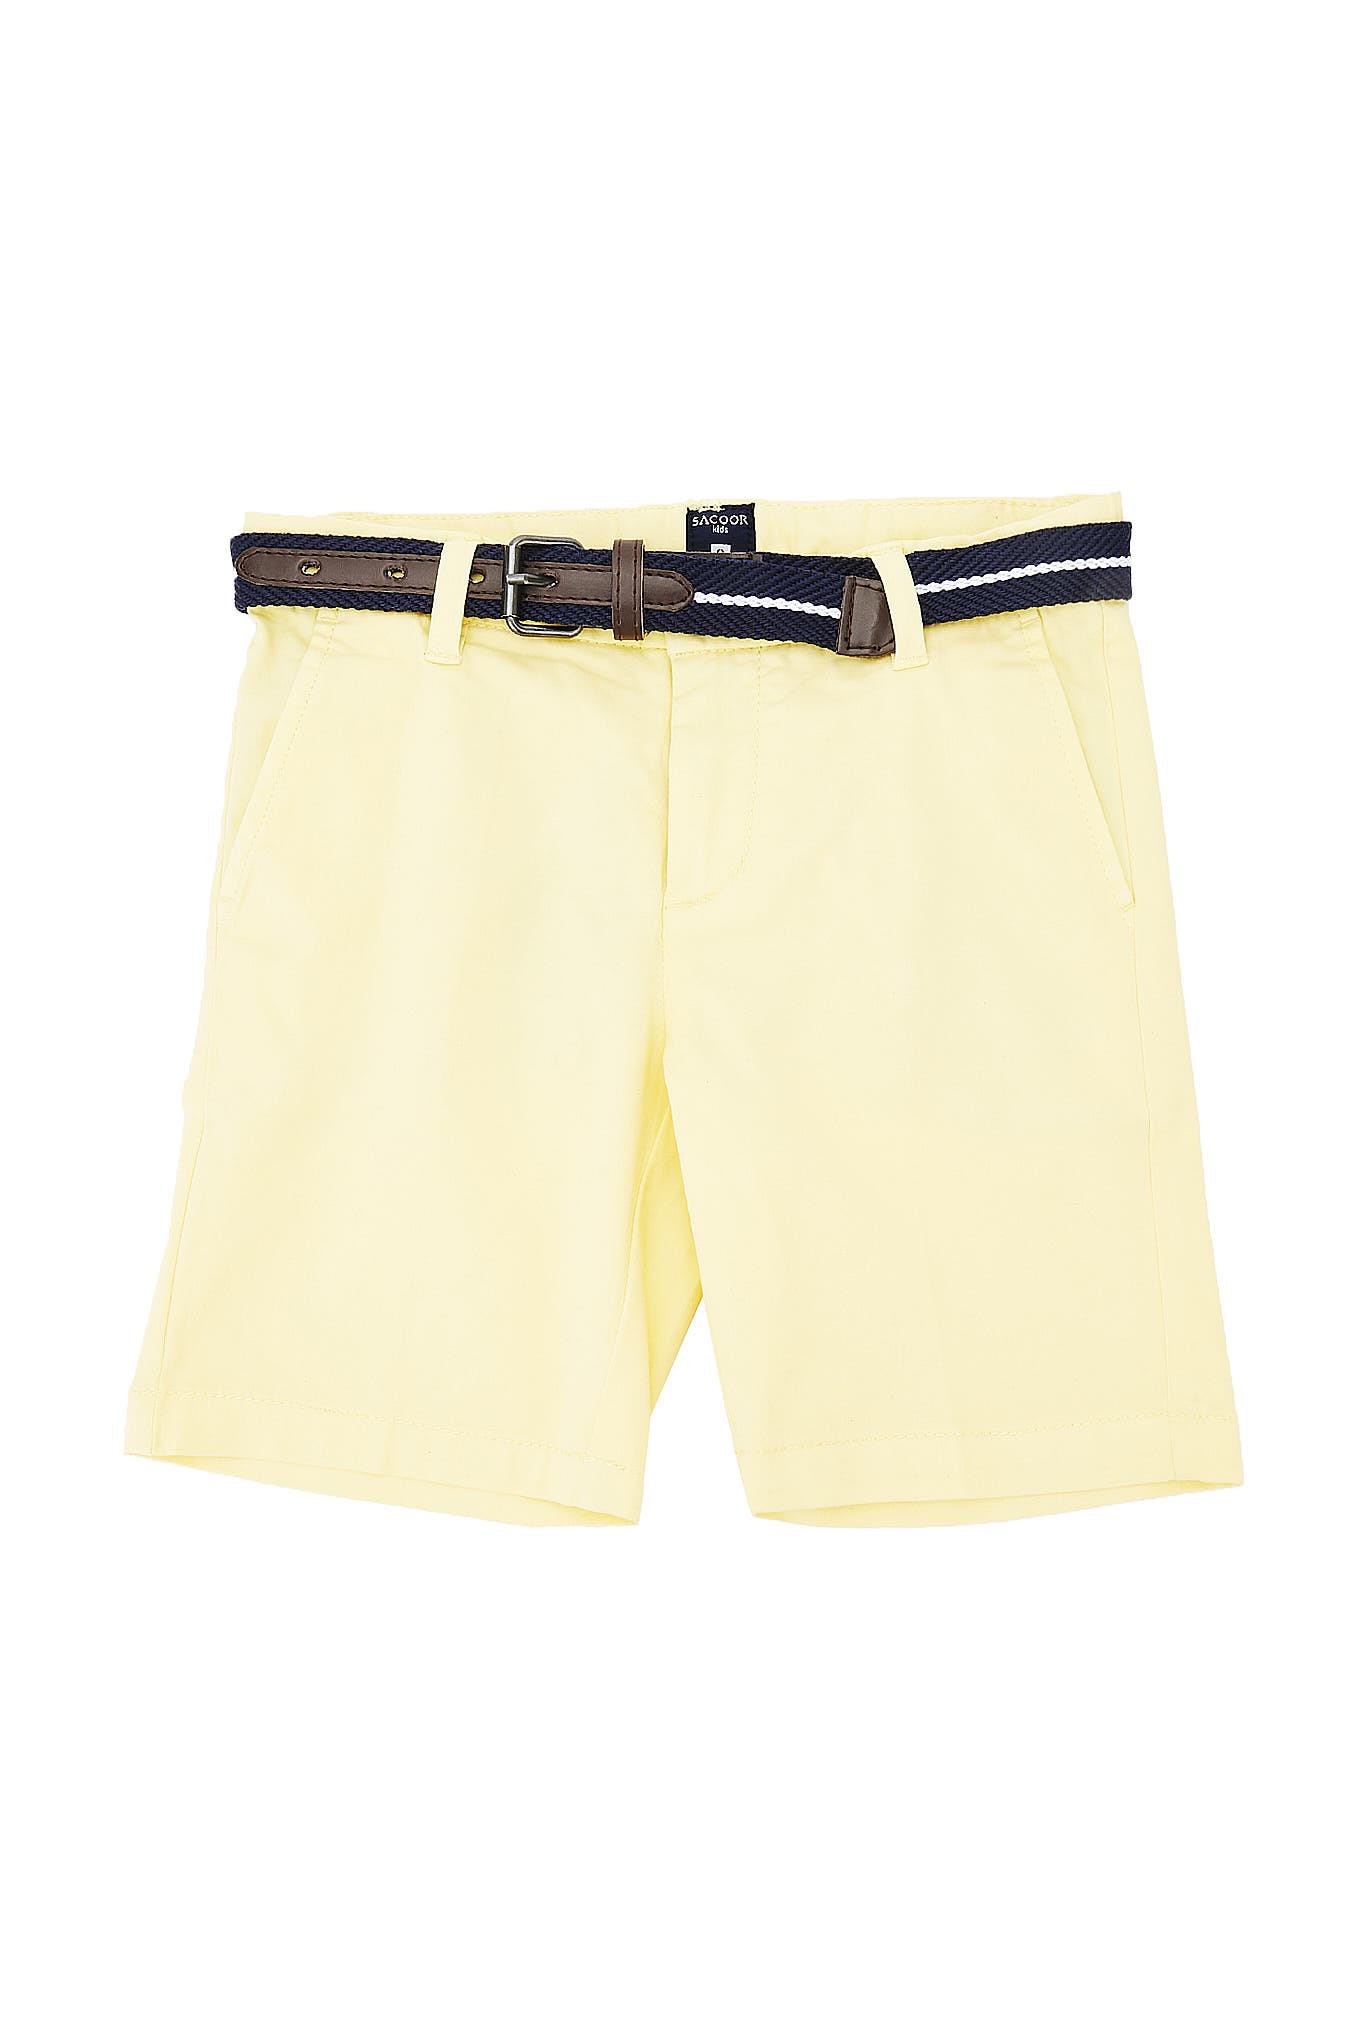 Bermuda Yellow Casual Boy